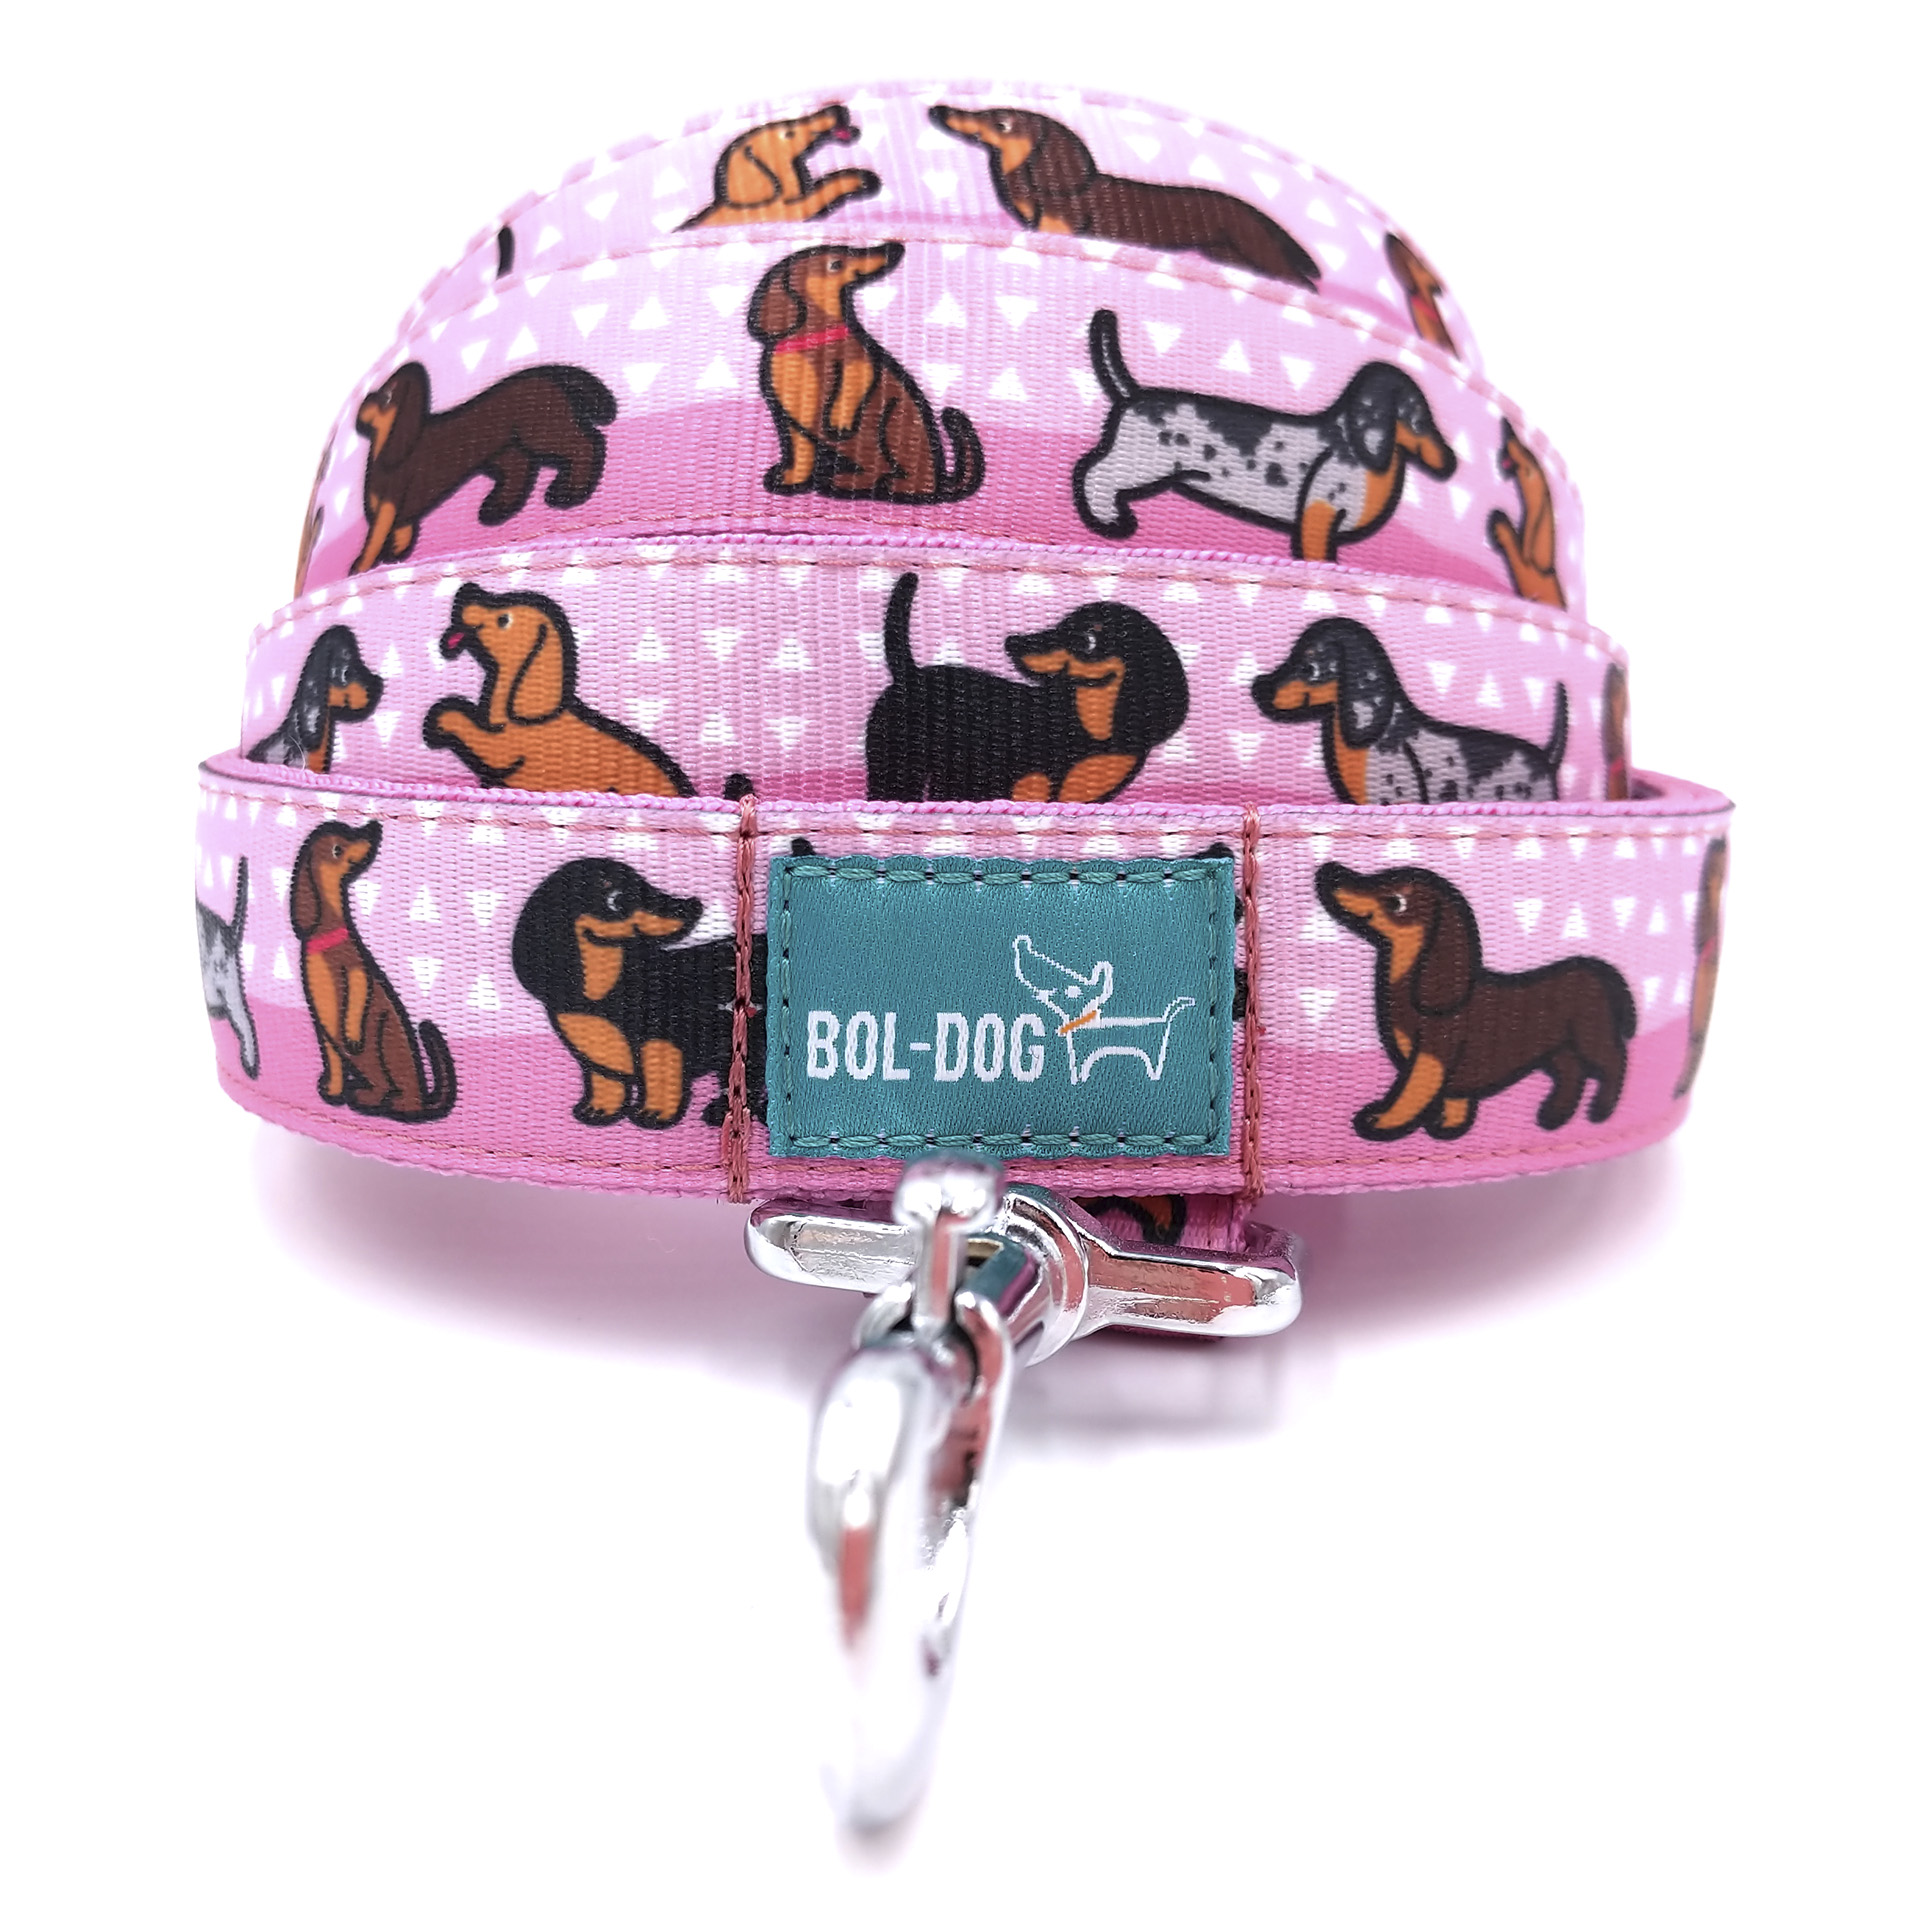 Doxie girl dog leash